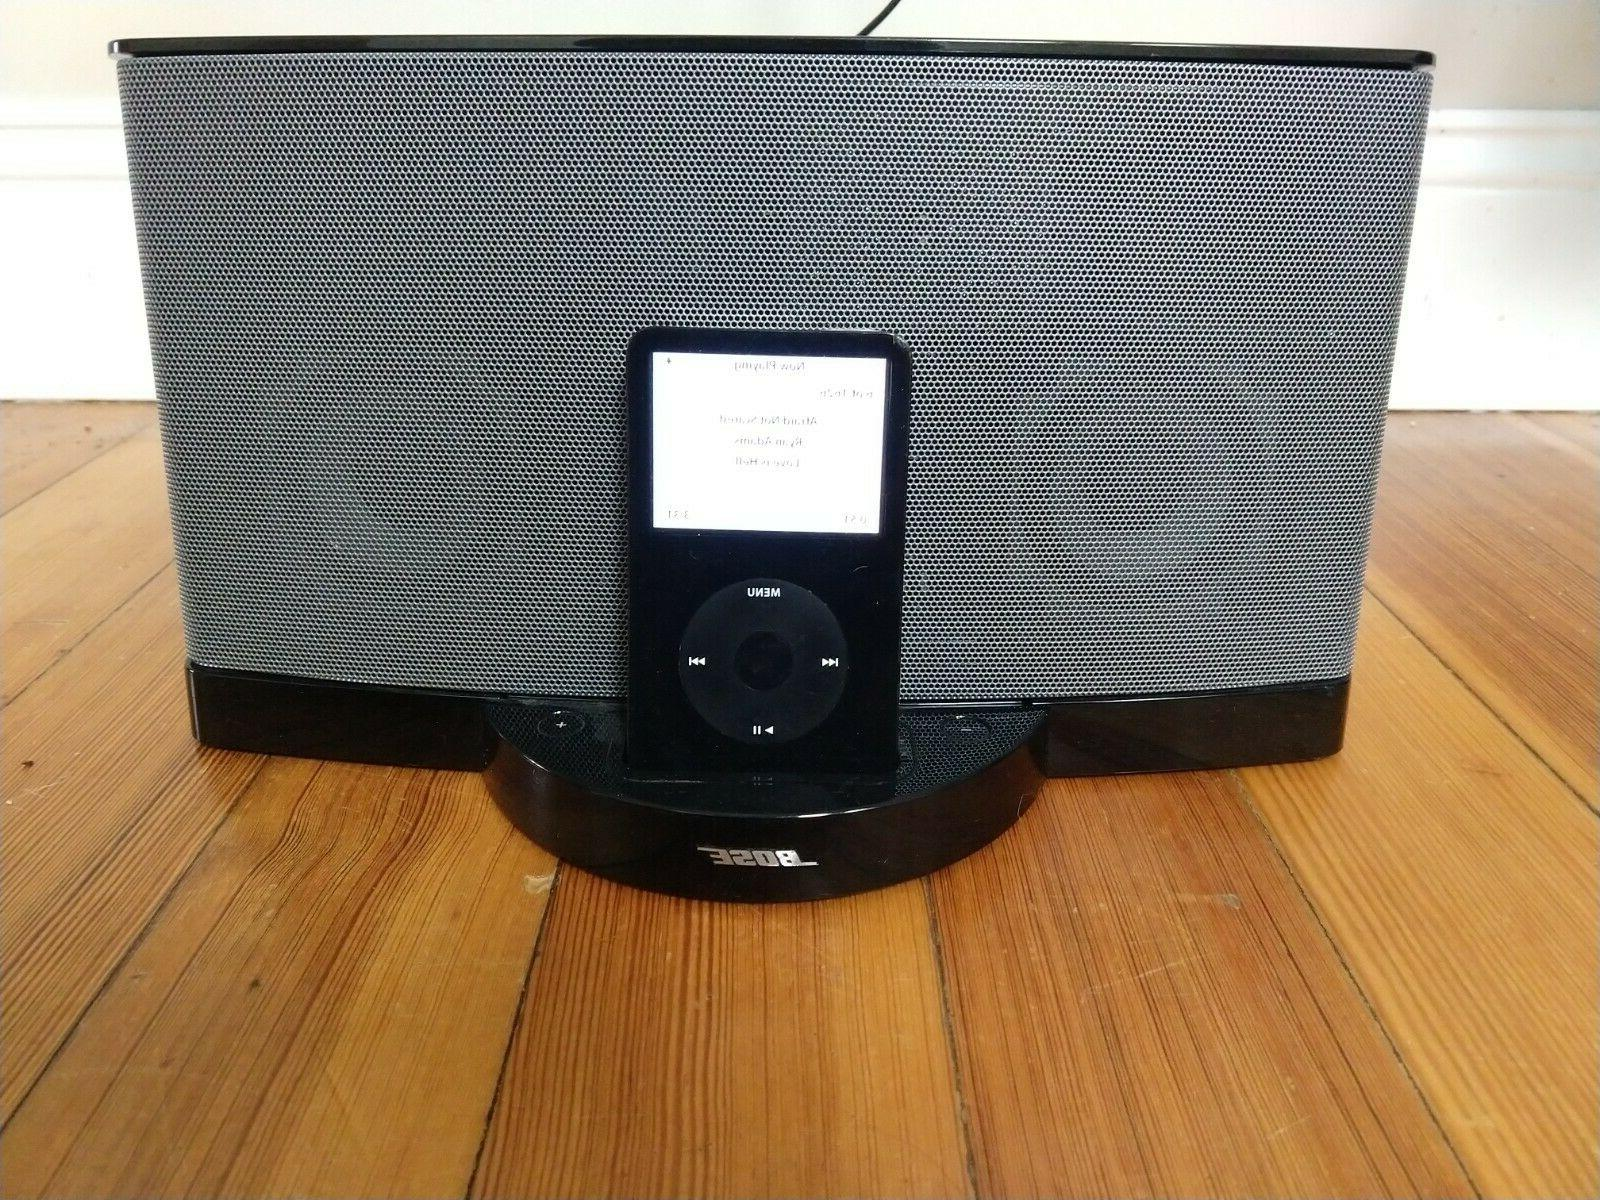 Apple iPod 30gb with BOSE